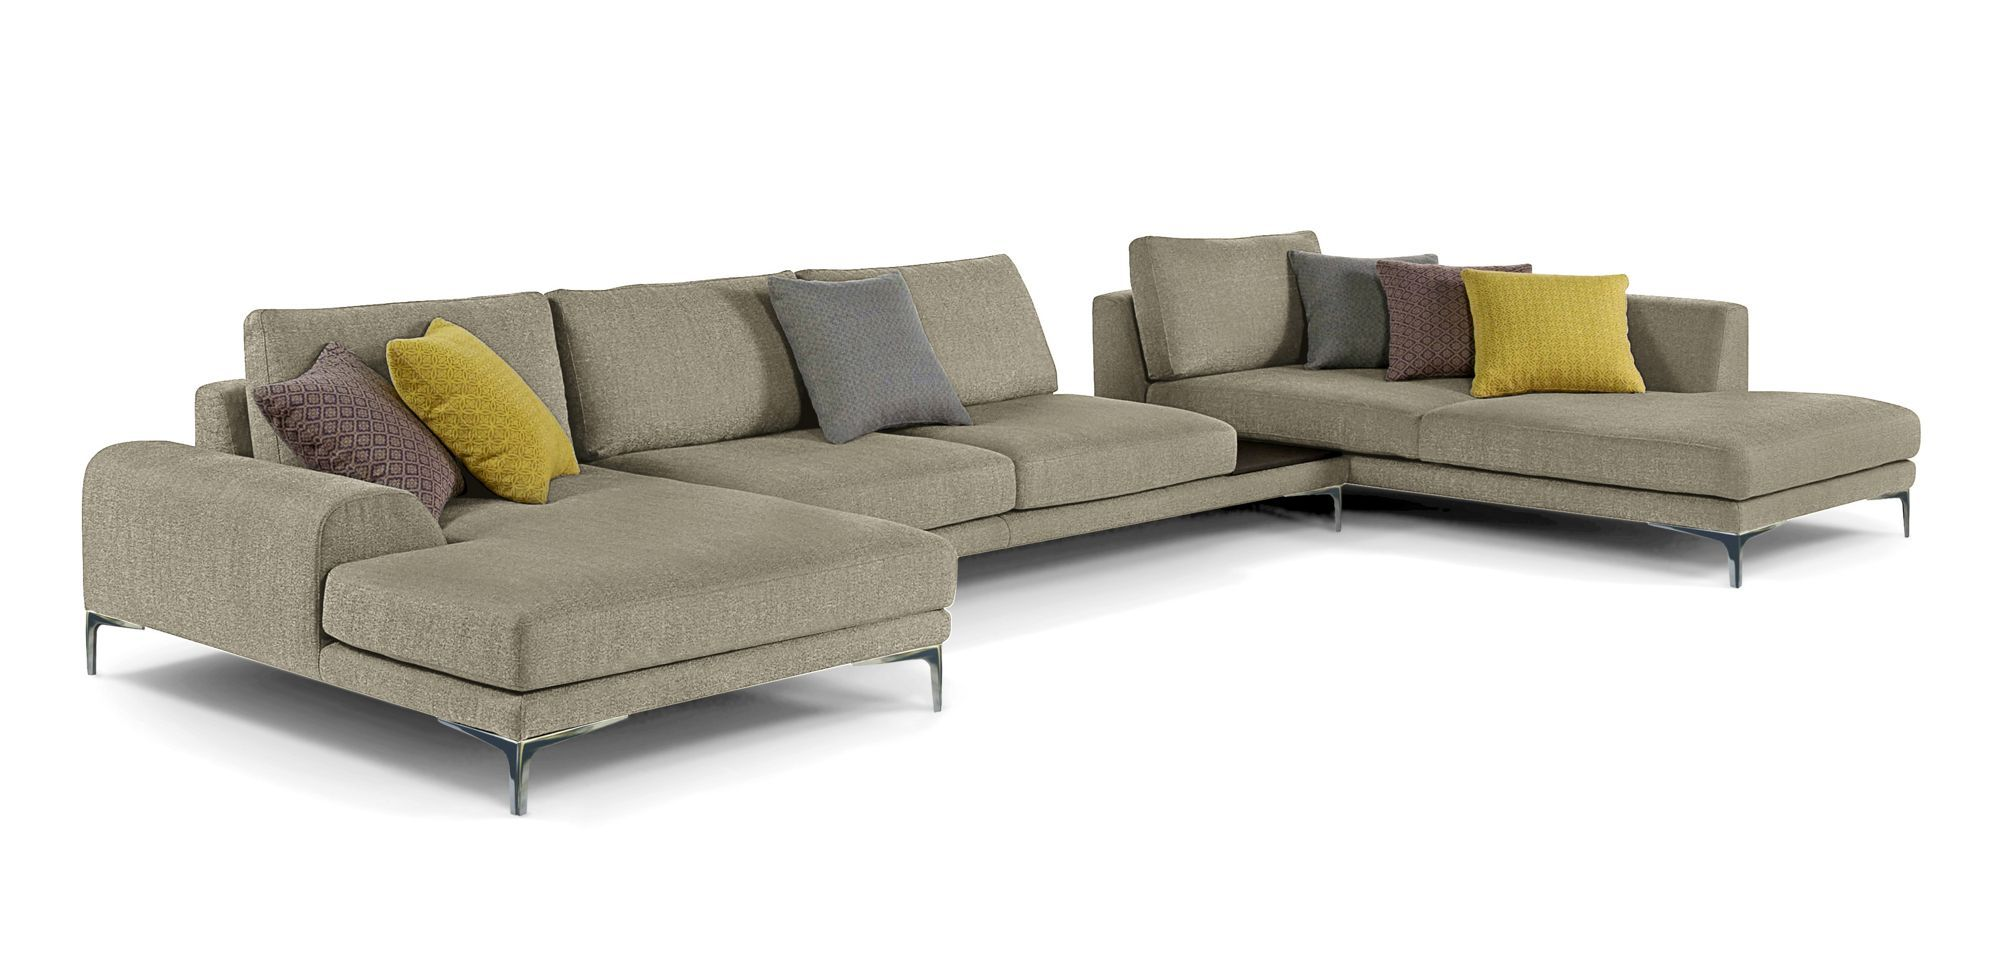 Exclamation Corner Composition Roche Bobois Living Room Sofa Furniture Home